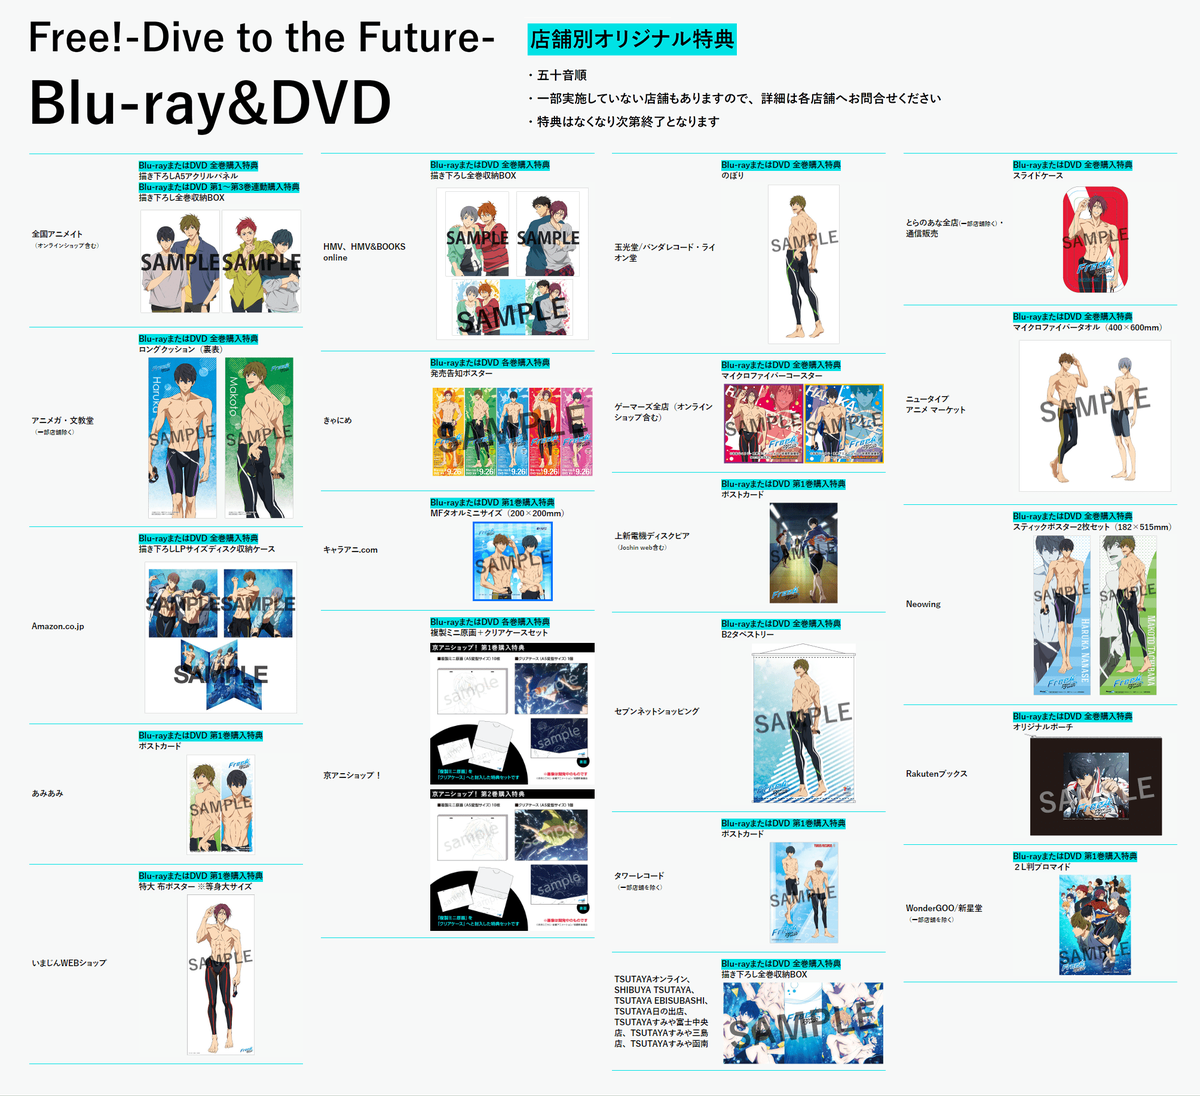 Free! -Dive to the Future- Blu-ray & DVD ..